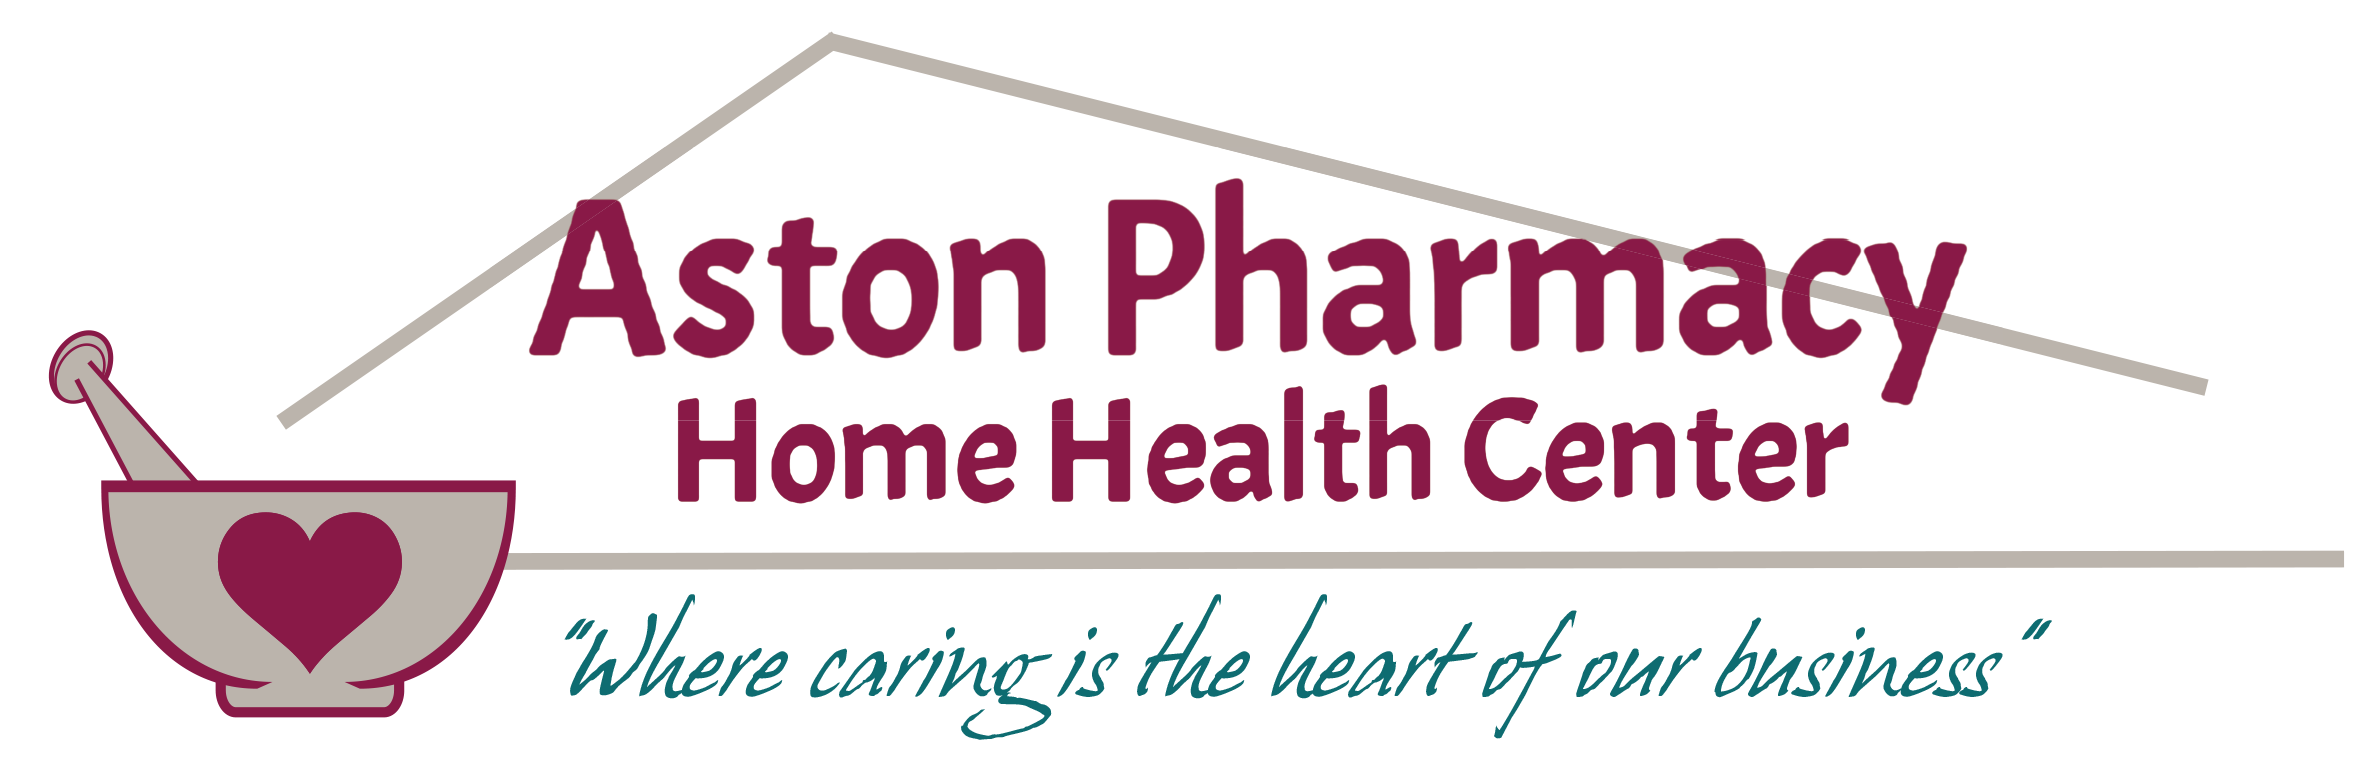 Aston Pharmacy Home Health Center